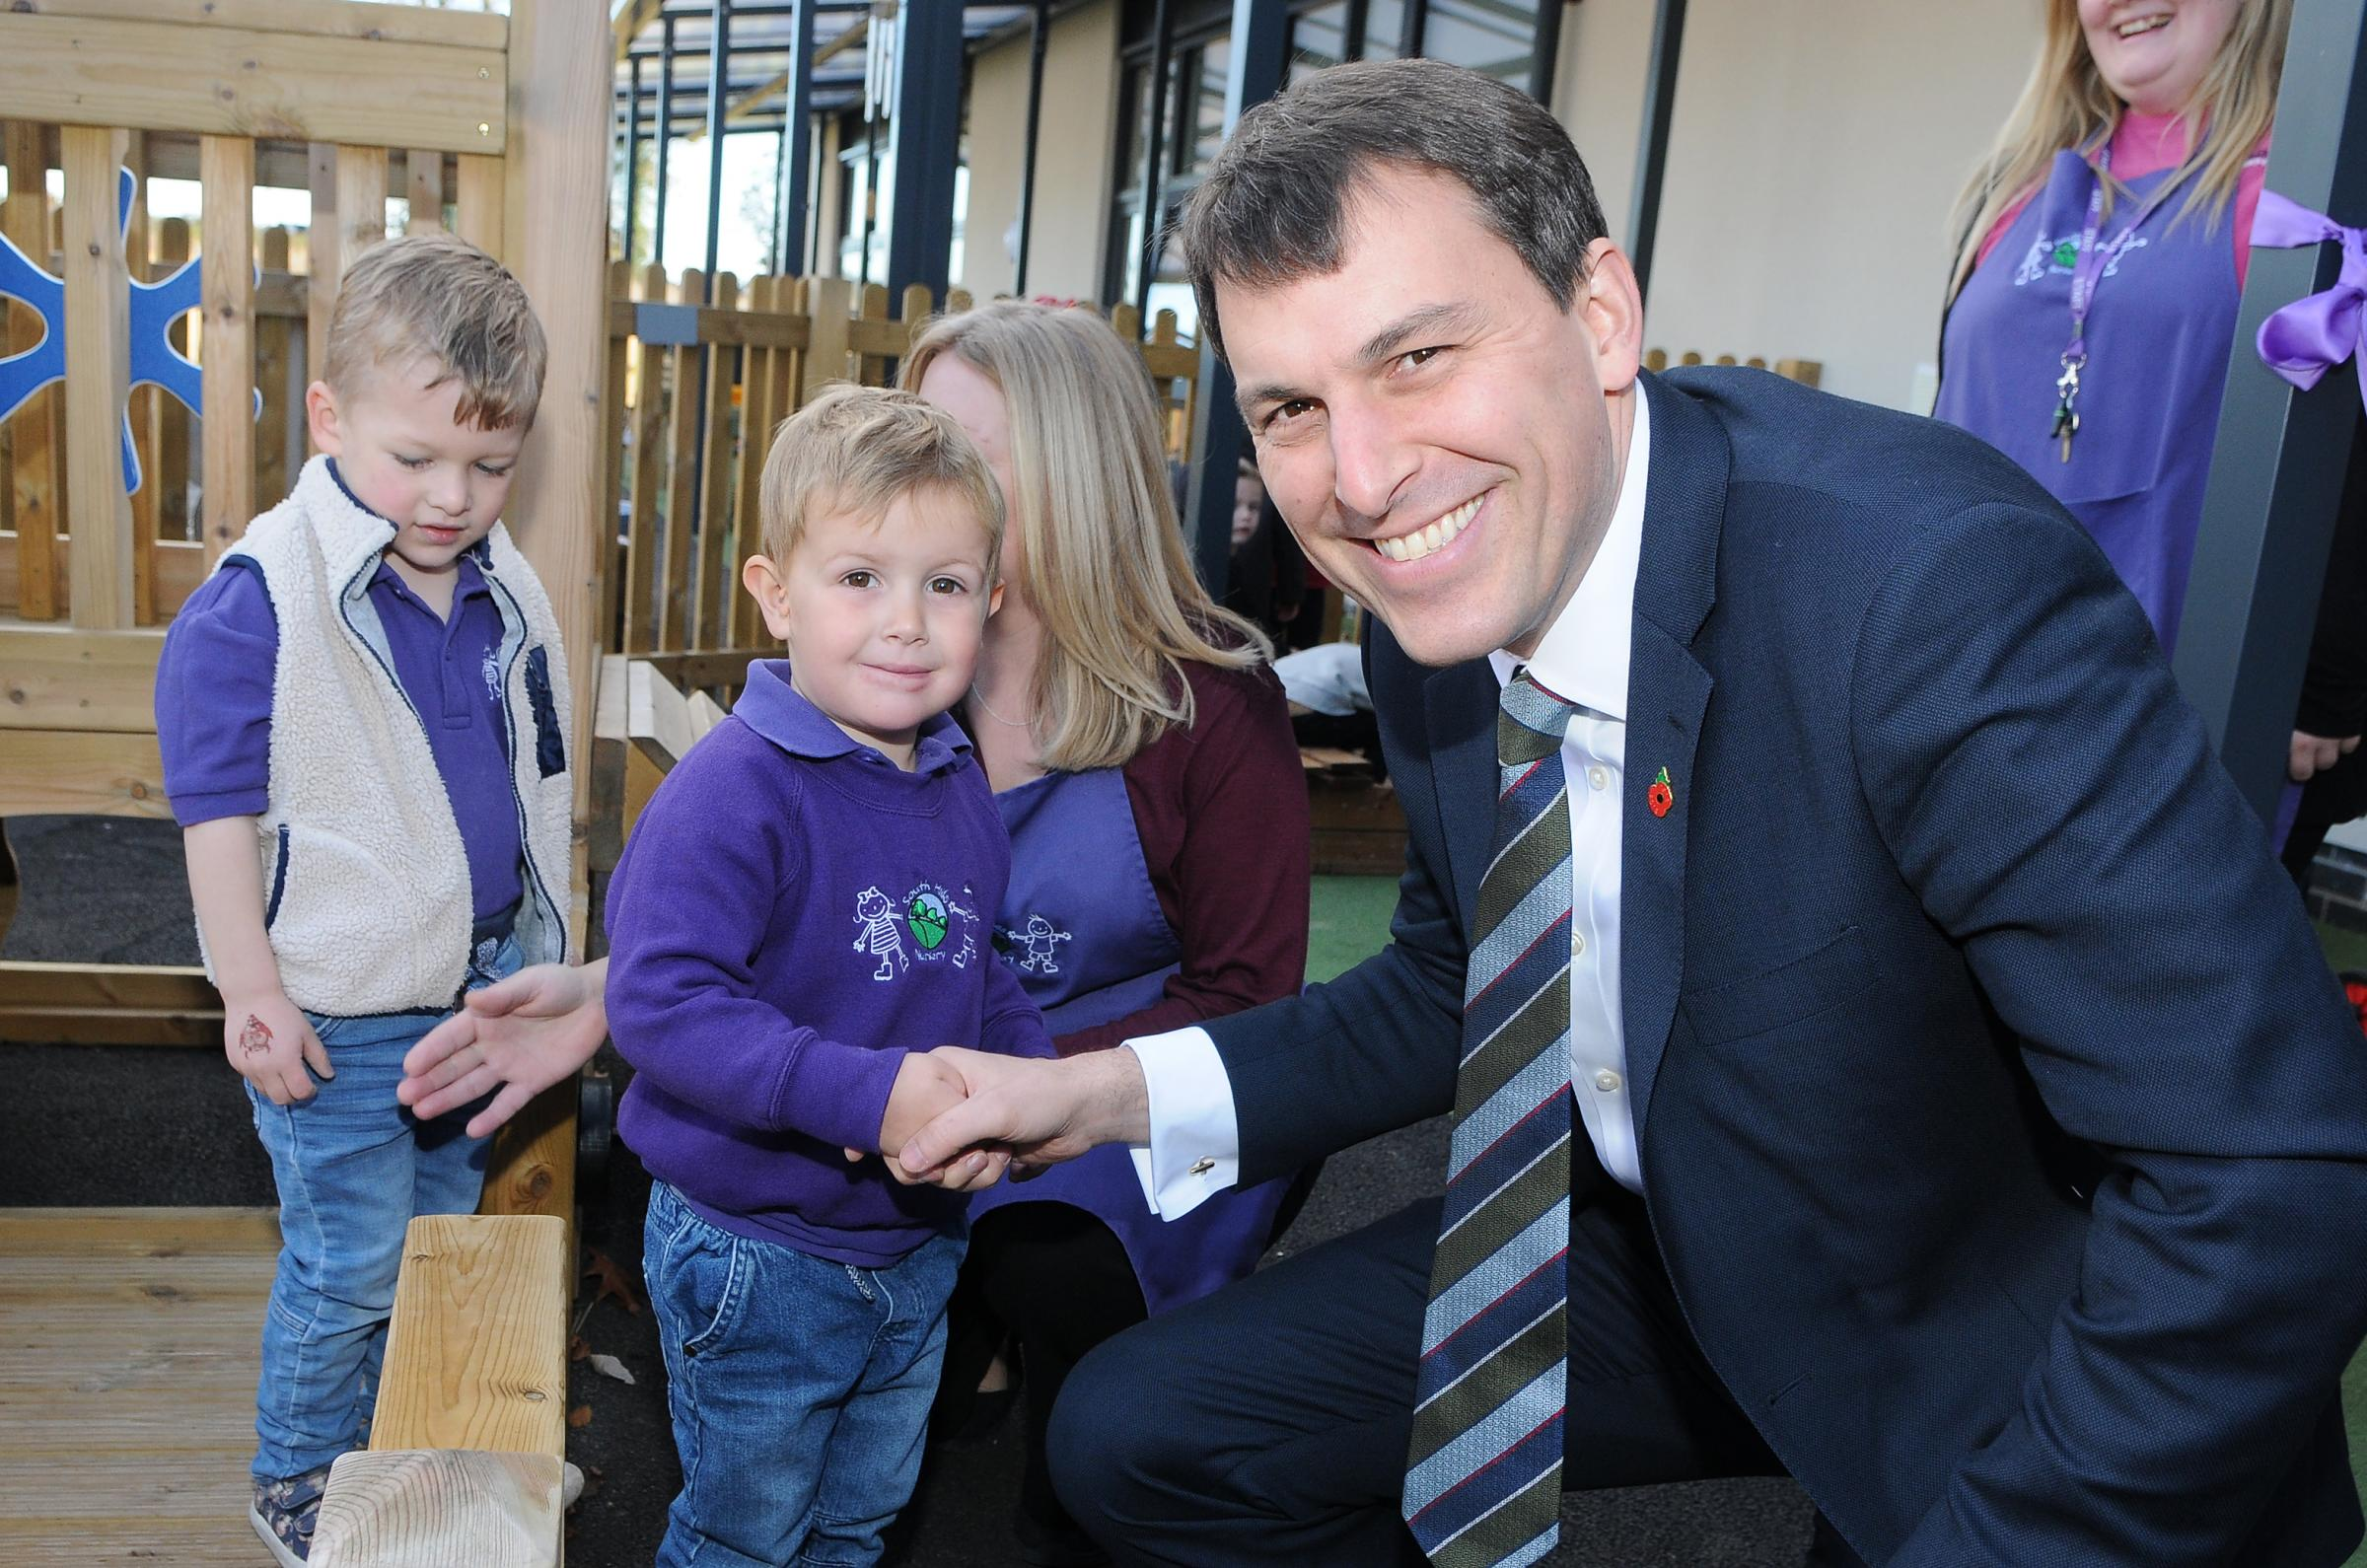 MP John Glen opens the new South Hills St Peter's Nursery at St Peter's Primary School, Salisbury DC8863P8 Picture by Tom Gregory.